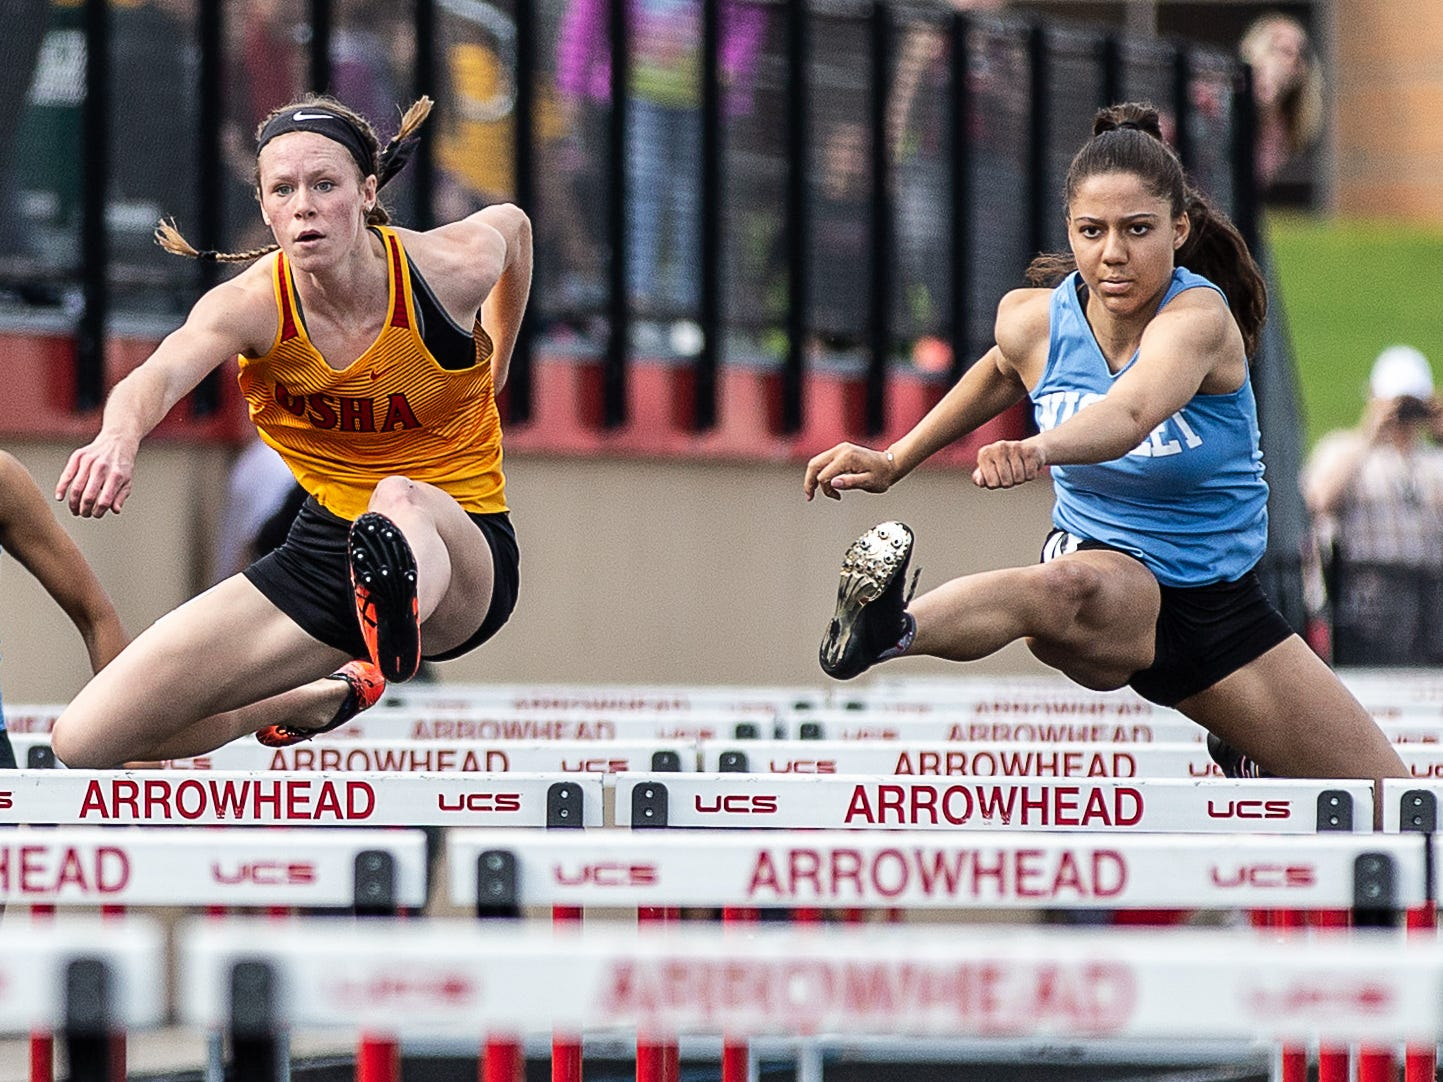 Divine Savior Holy Angels junior Jadin O'Brien (left) and Nicolet senior Destiny Huven compete in the 100 meter hurdles at the 2019 Myrhum Invitational track and field meet in Hartland on Saturday, May 4. O'Brien won with a time of 14.28.